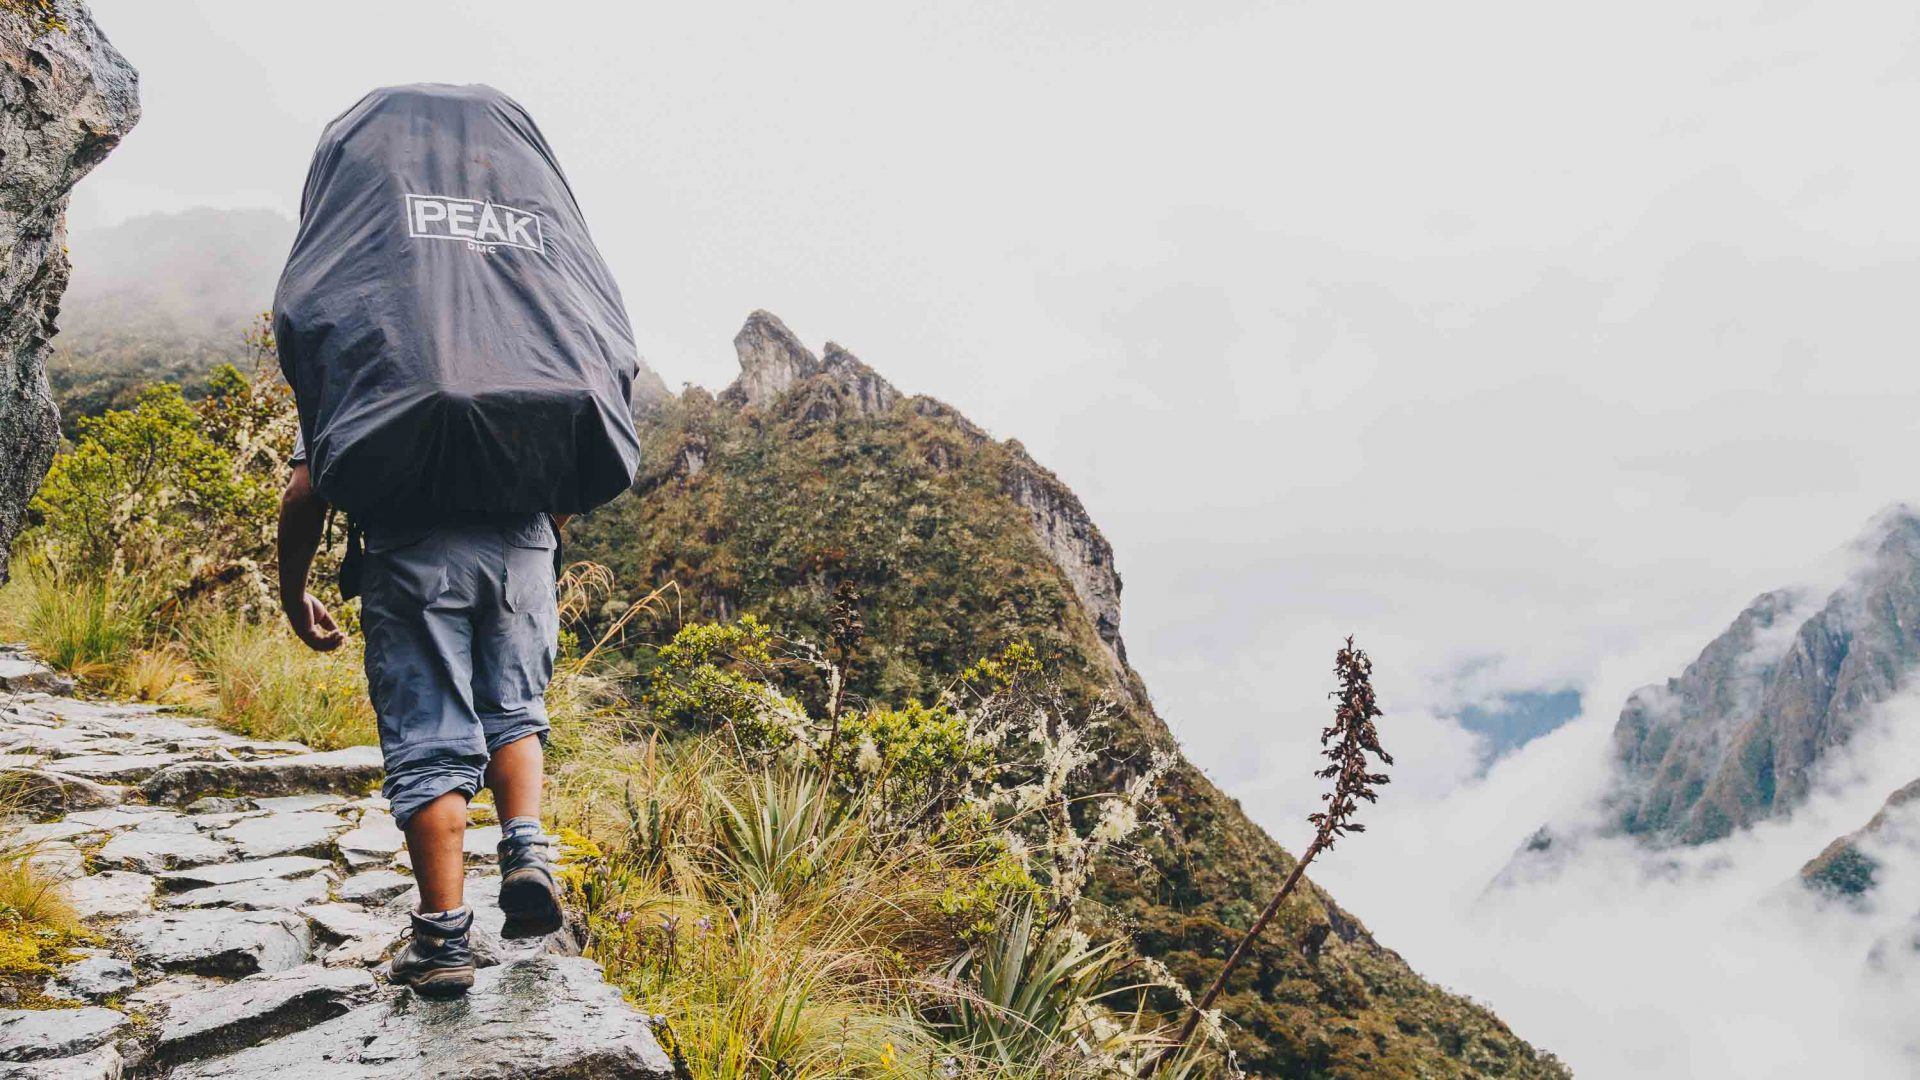 This porter has hiked the Inca Trail hundreds of times, but never seen Machu Picchu